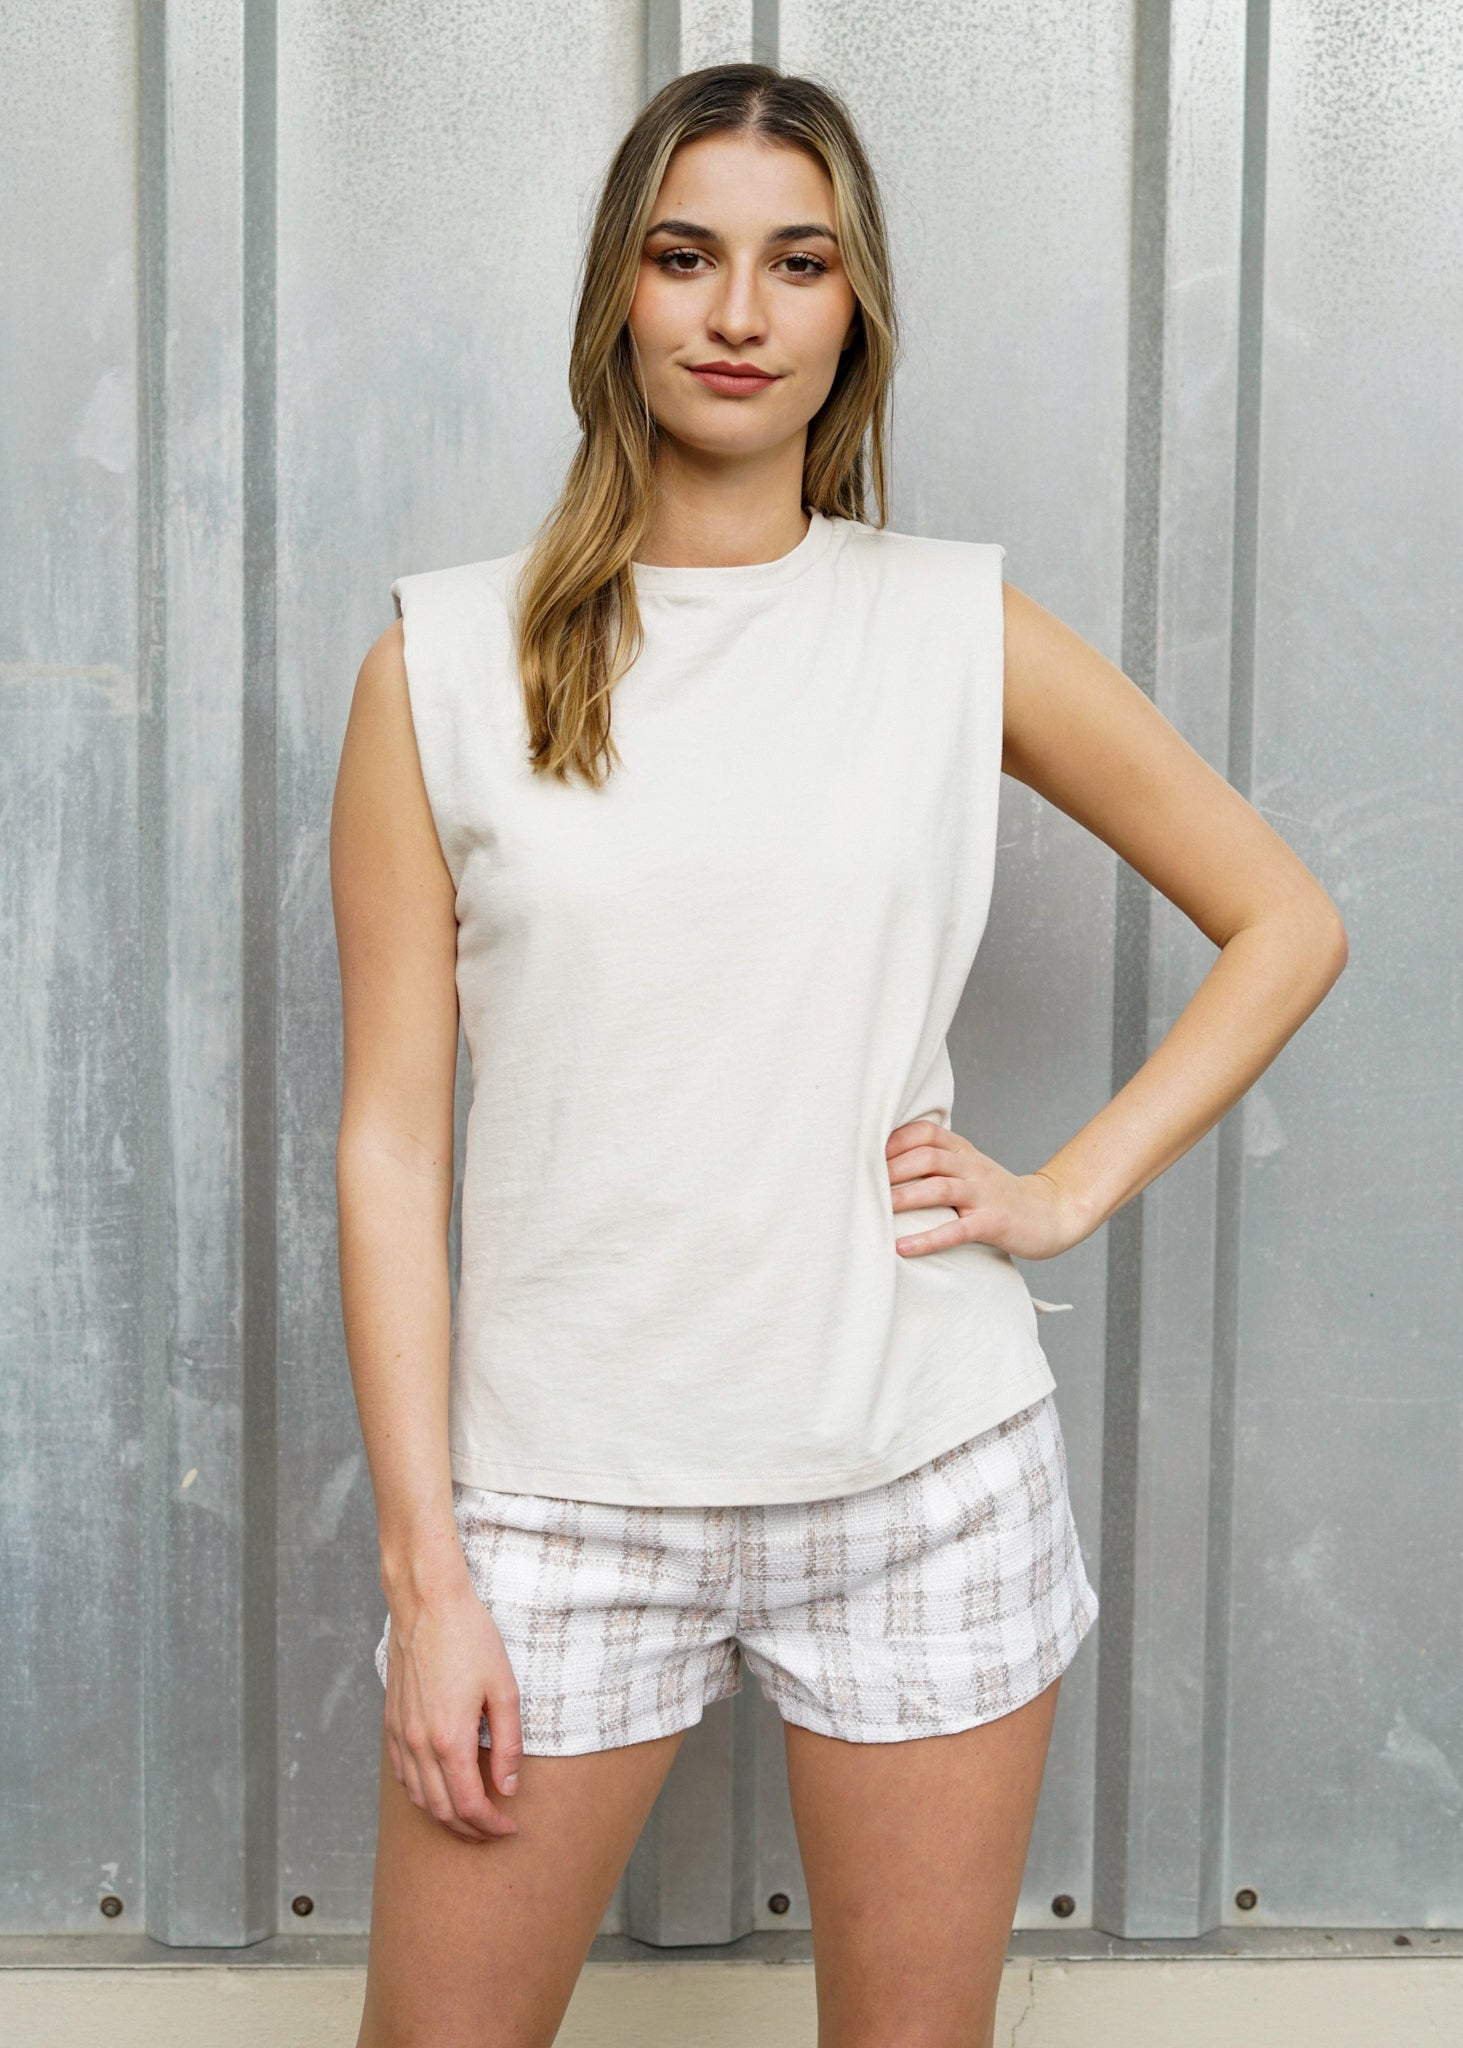 Shoulder Pad Cream Cotton Tank Top